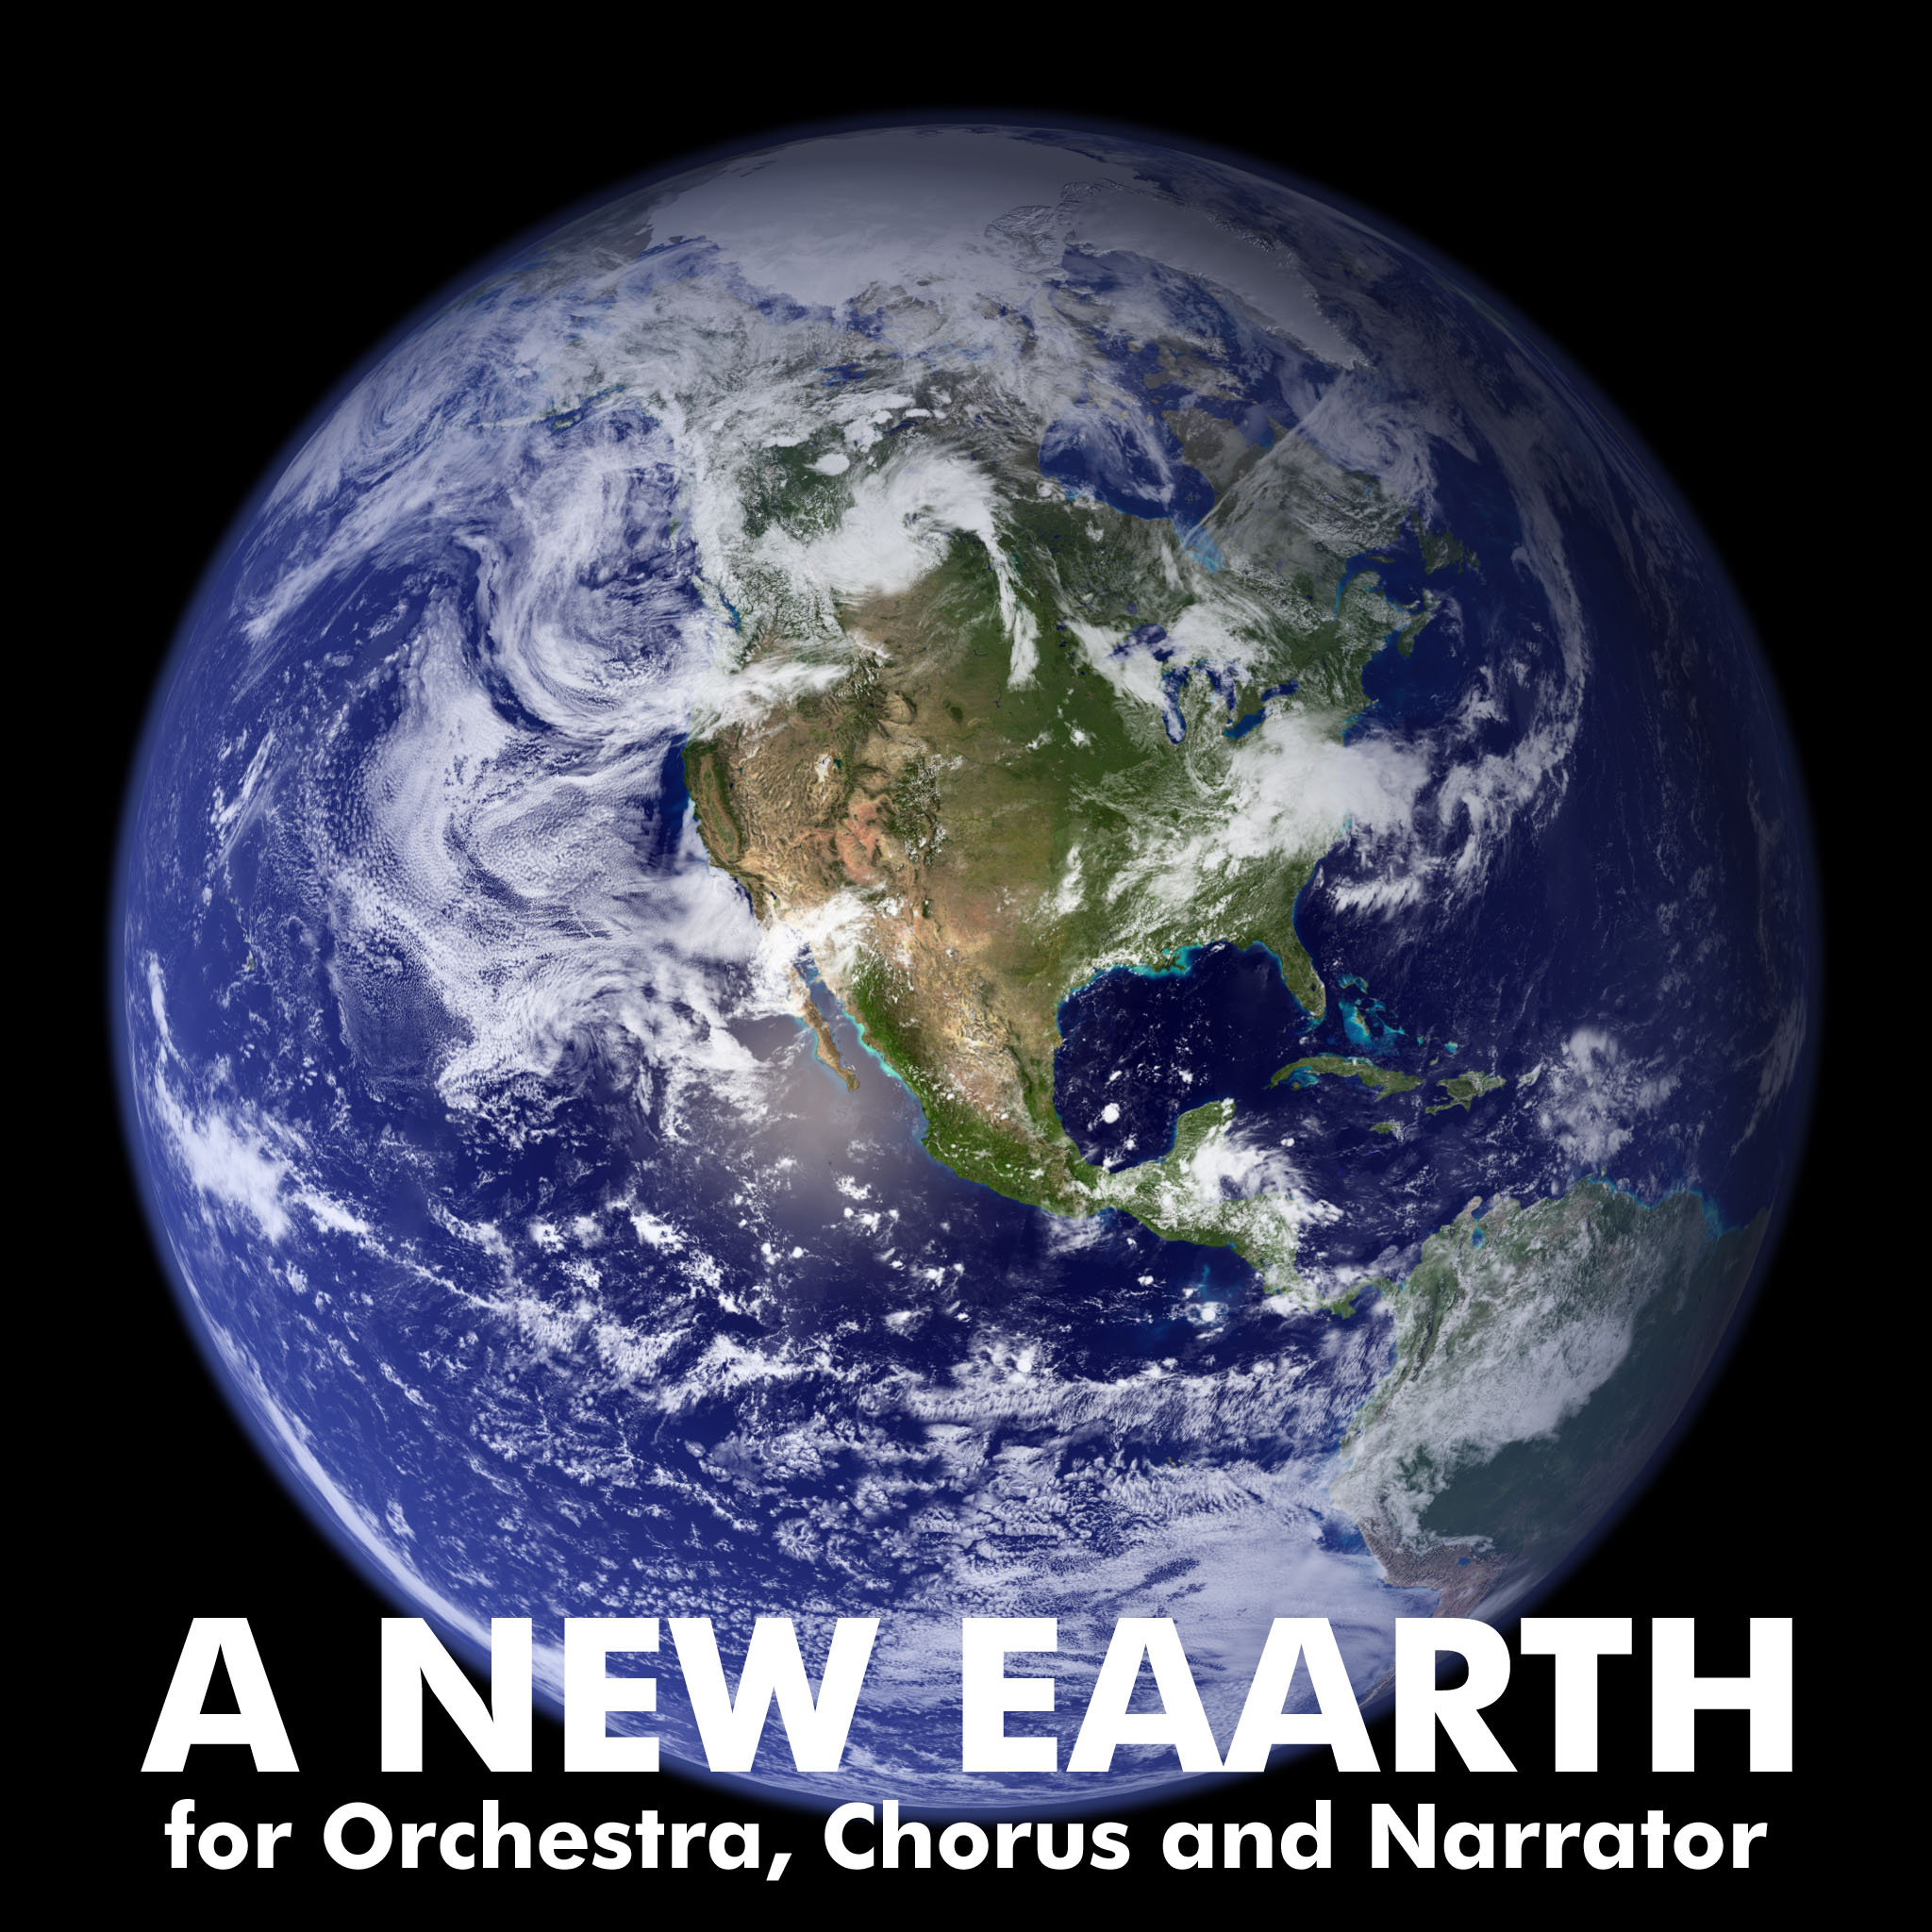 A New Eaarth  - for Orchestra, Chorus and Narrator